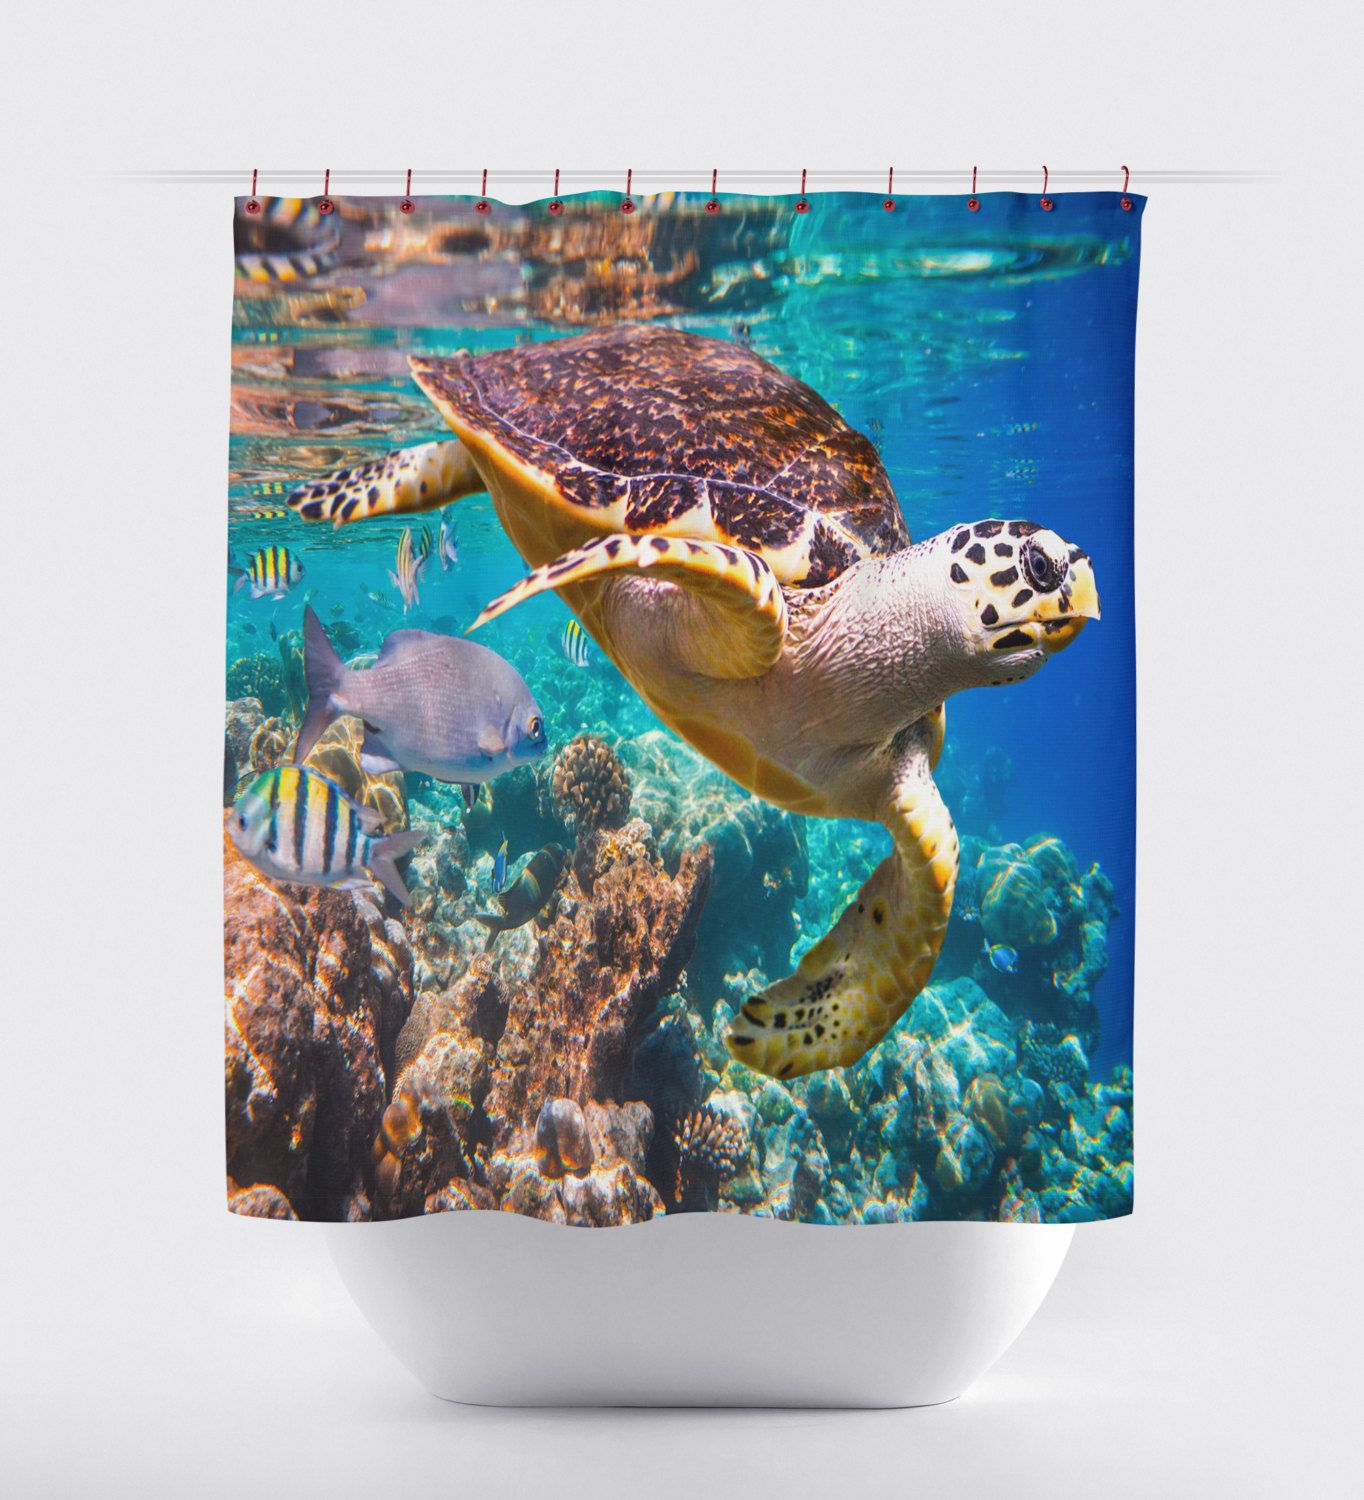 Sea Turtle Curtains,Bed And Bath, Shower Curtains, Bathroom Curtain,Turtles,